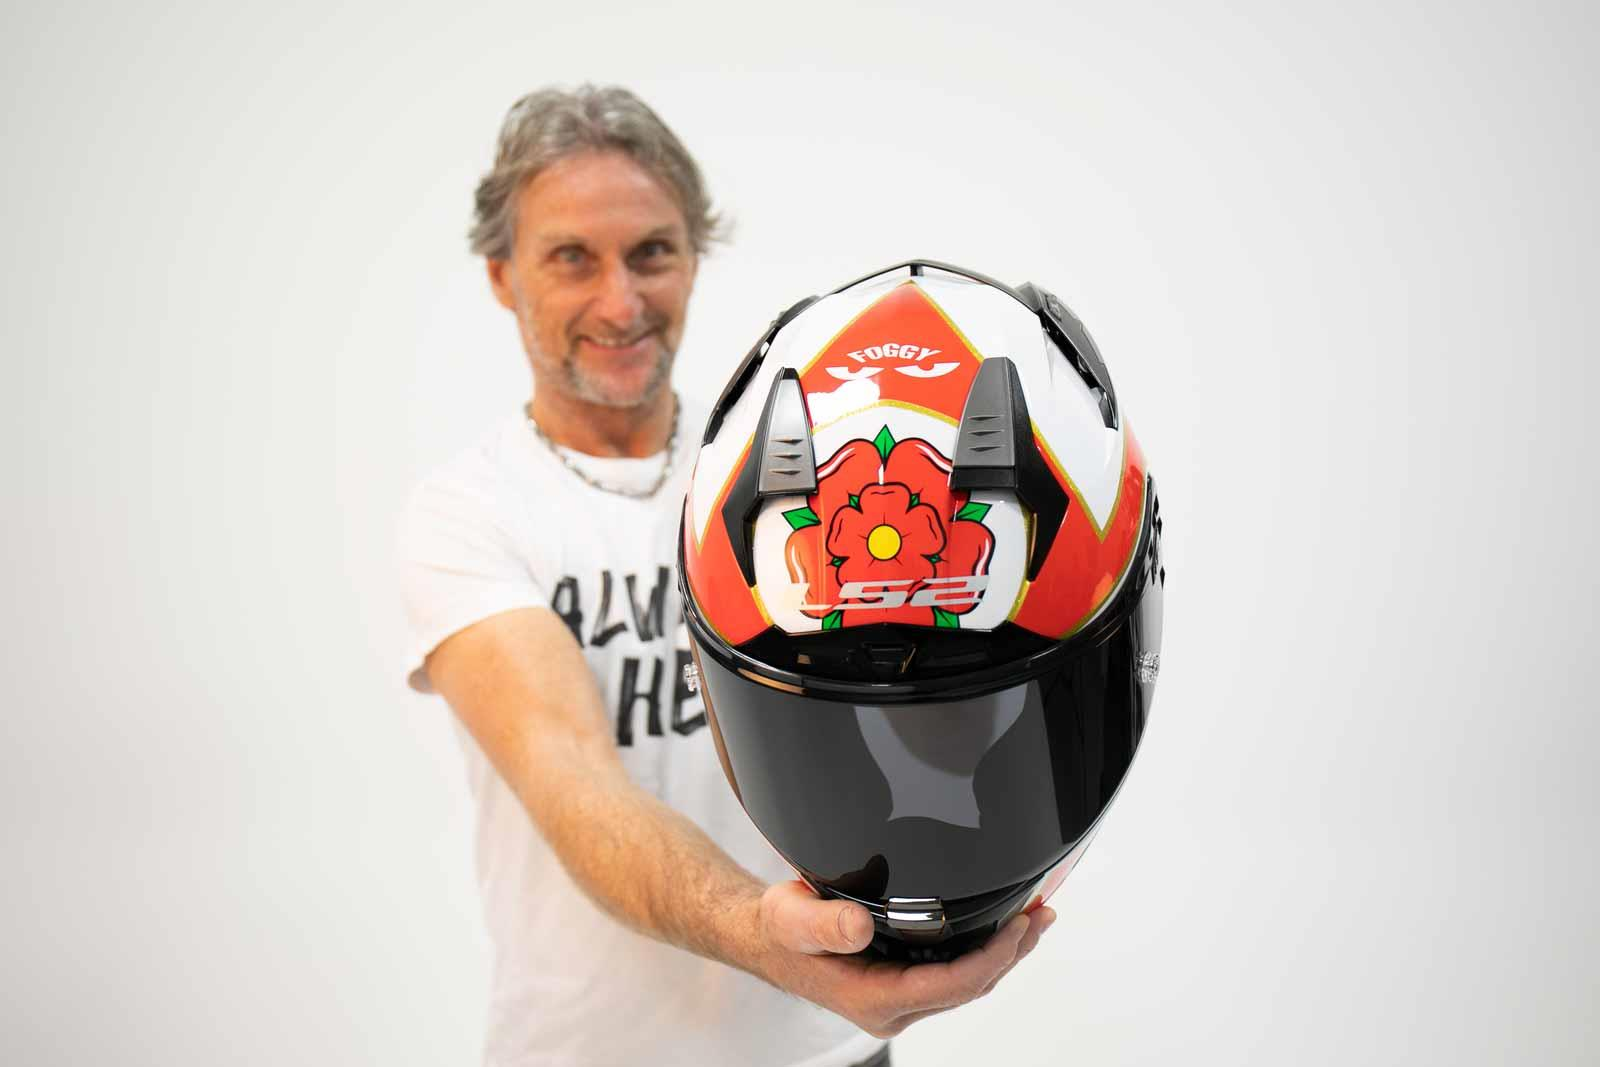 Carl Fogarty with his LS2 helmet